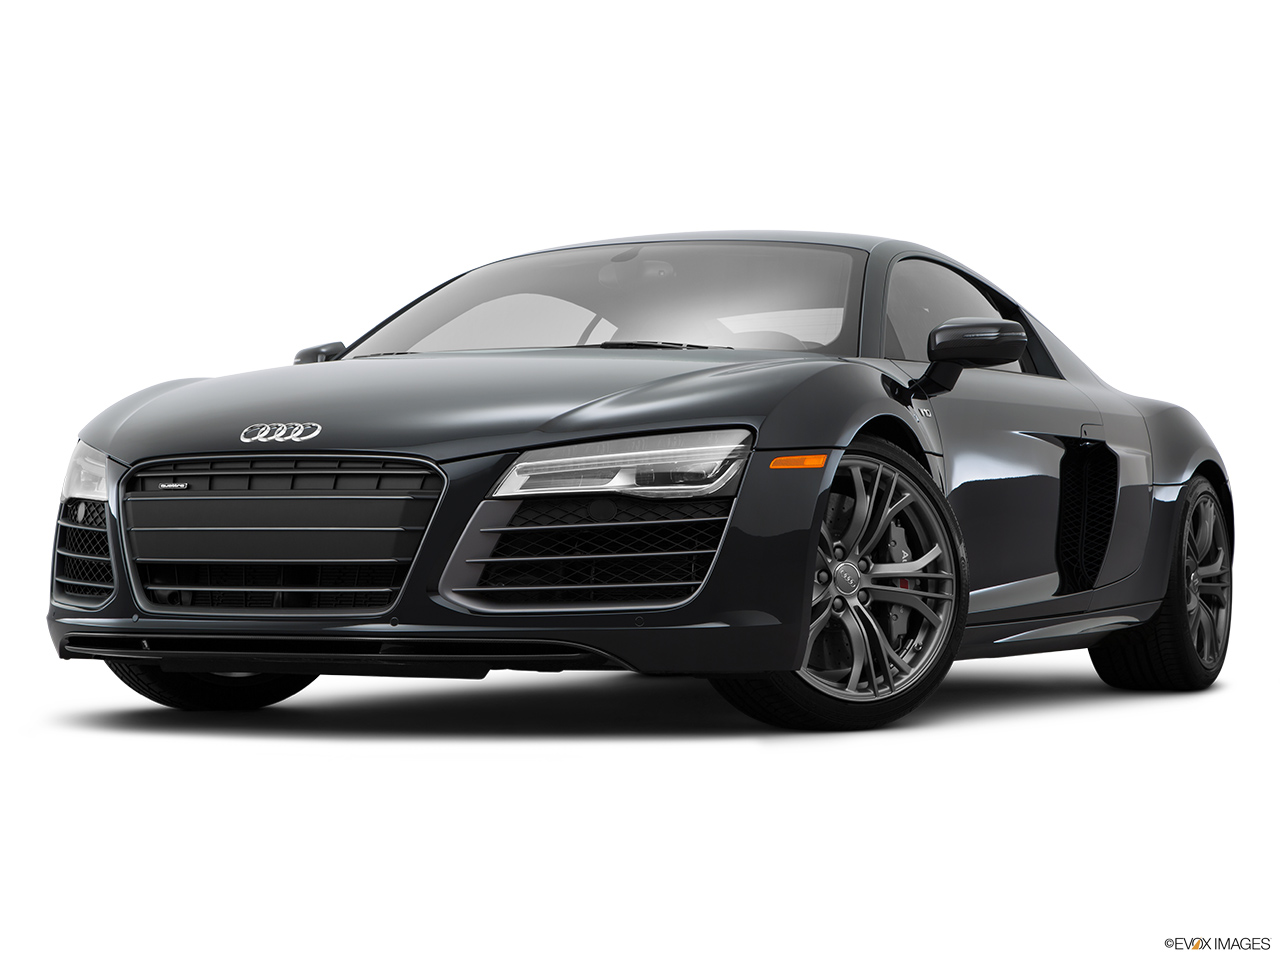 2015 Audi R8 Coupe Automatic Quattro V10 Front Angle